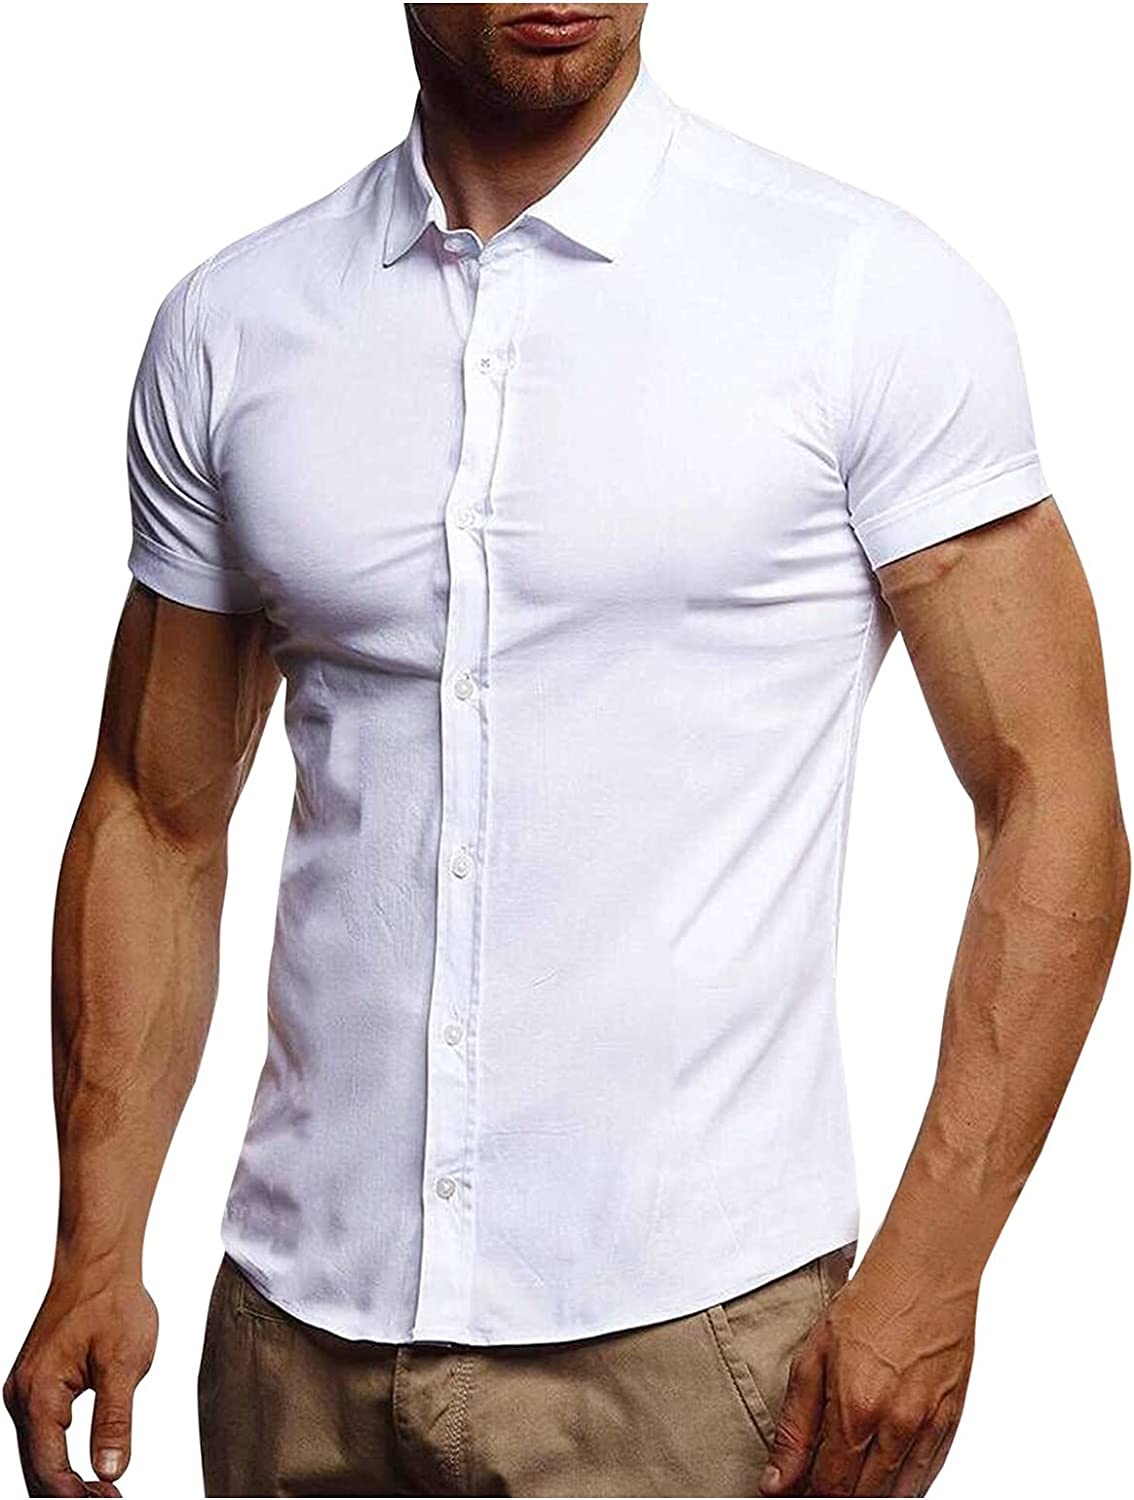 LEIYAN Mens Casual Button-Down Dress Shirts Short Sleeve Slim Fit Work Business Athletic Gym Workout Muscle Tops